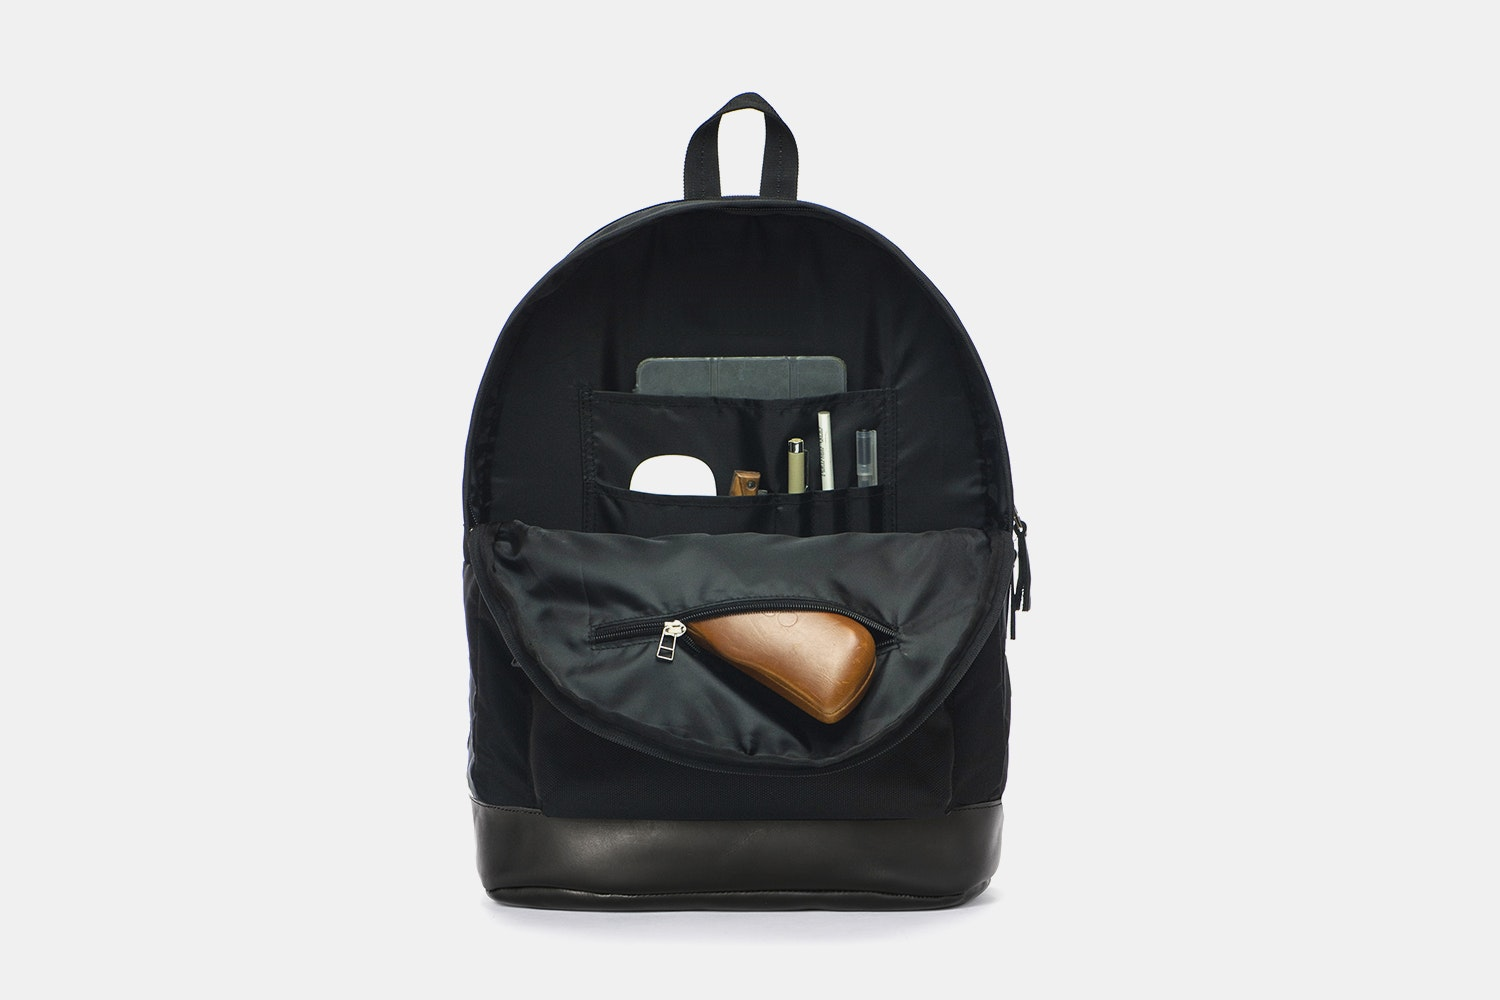 Taikan Everything Lancer Backpack